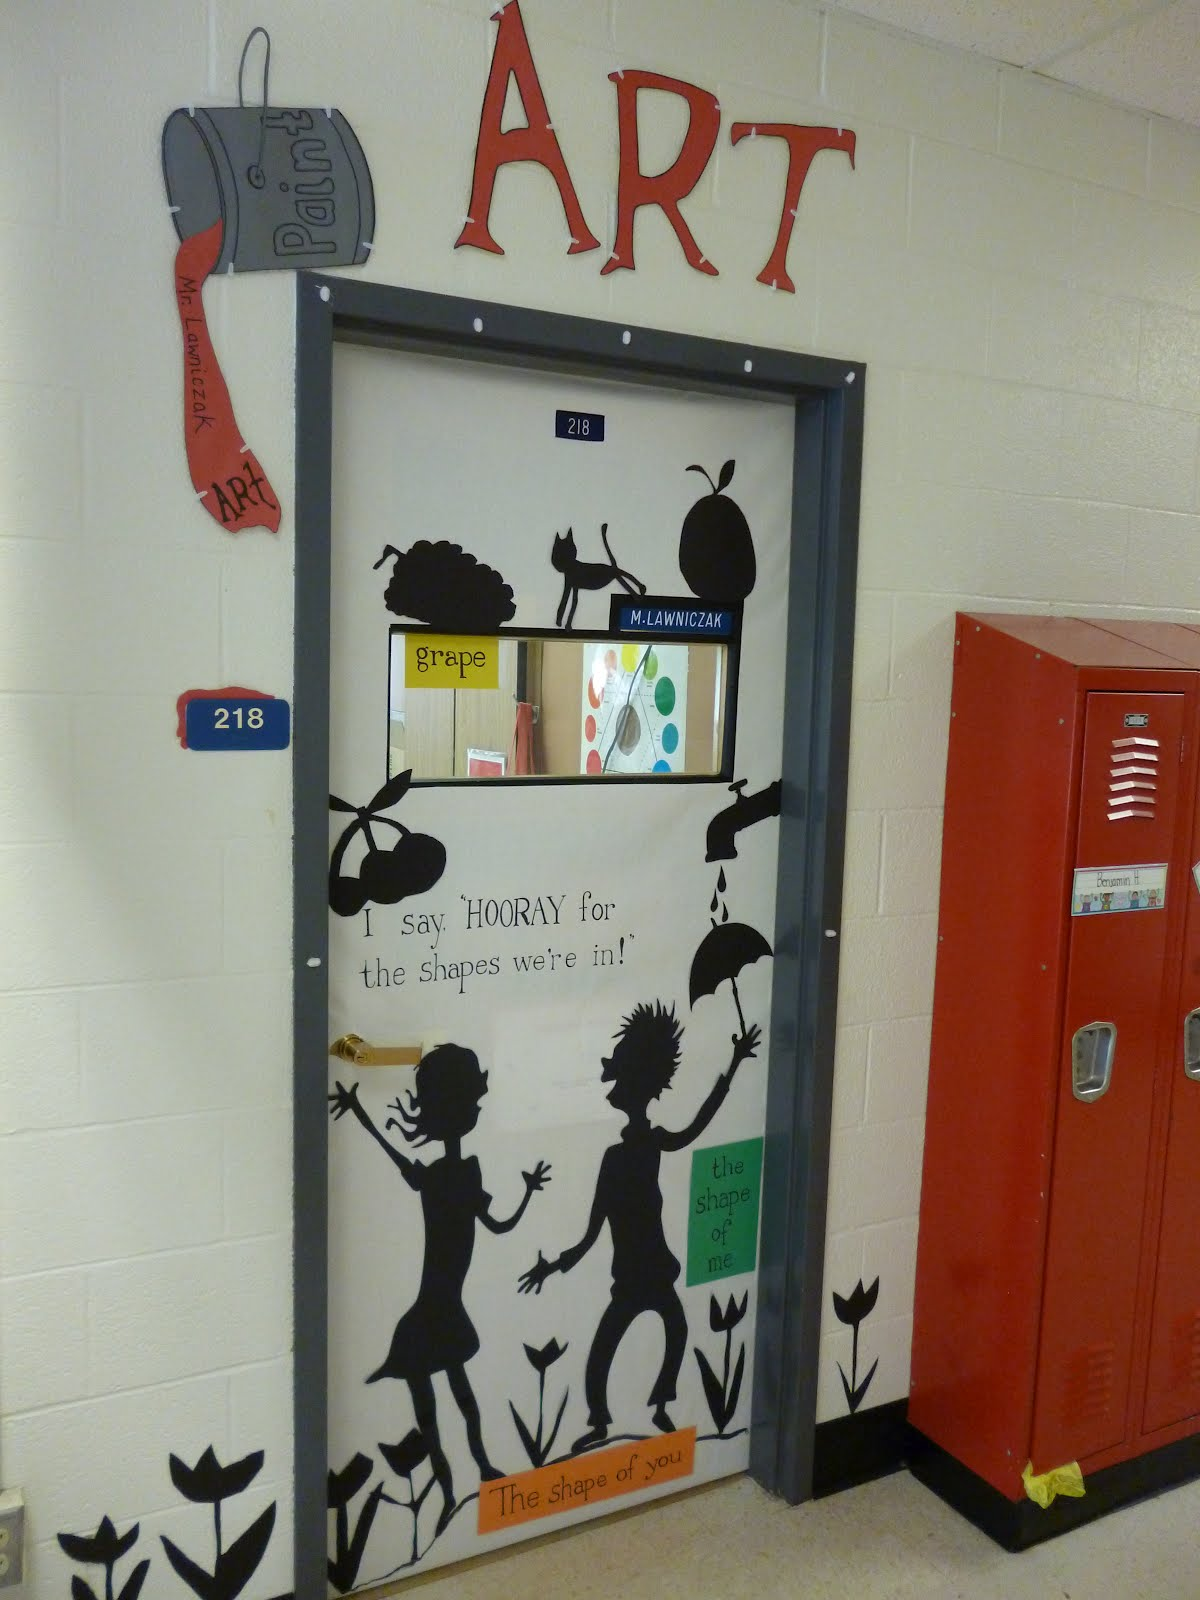 Artistic freedom seuss week door decorating contest